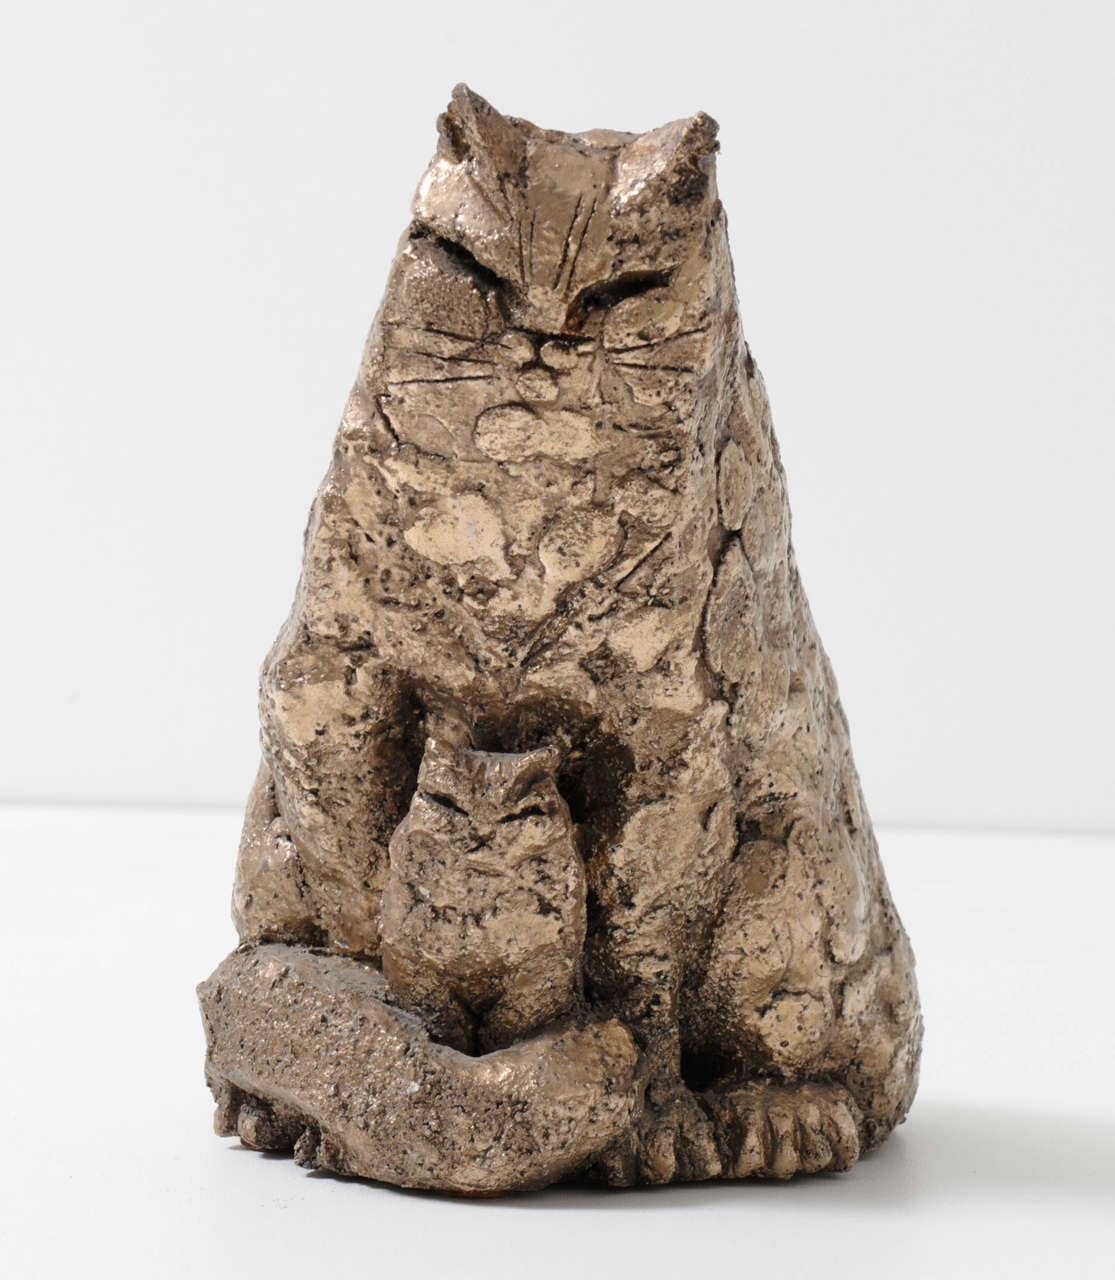 A ceramic cat with baby cat in a textured bronzed glaze, signed with Karel, 1970s.